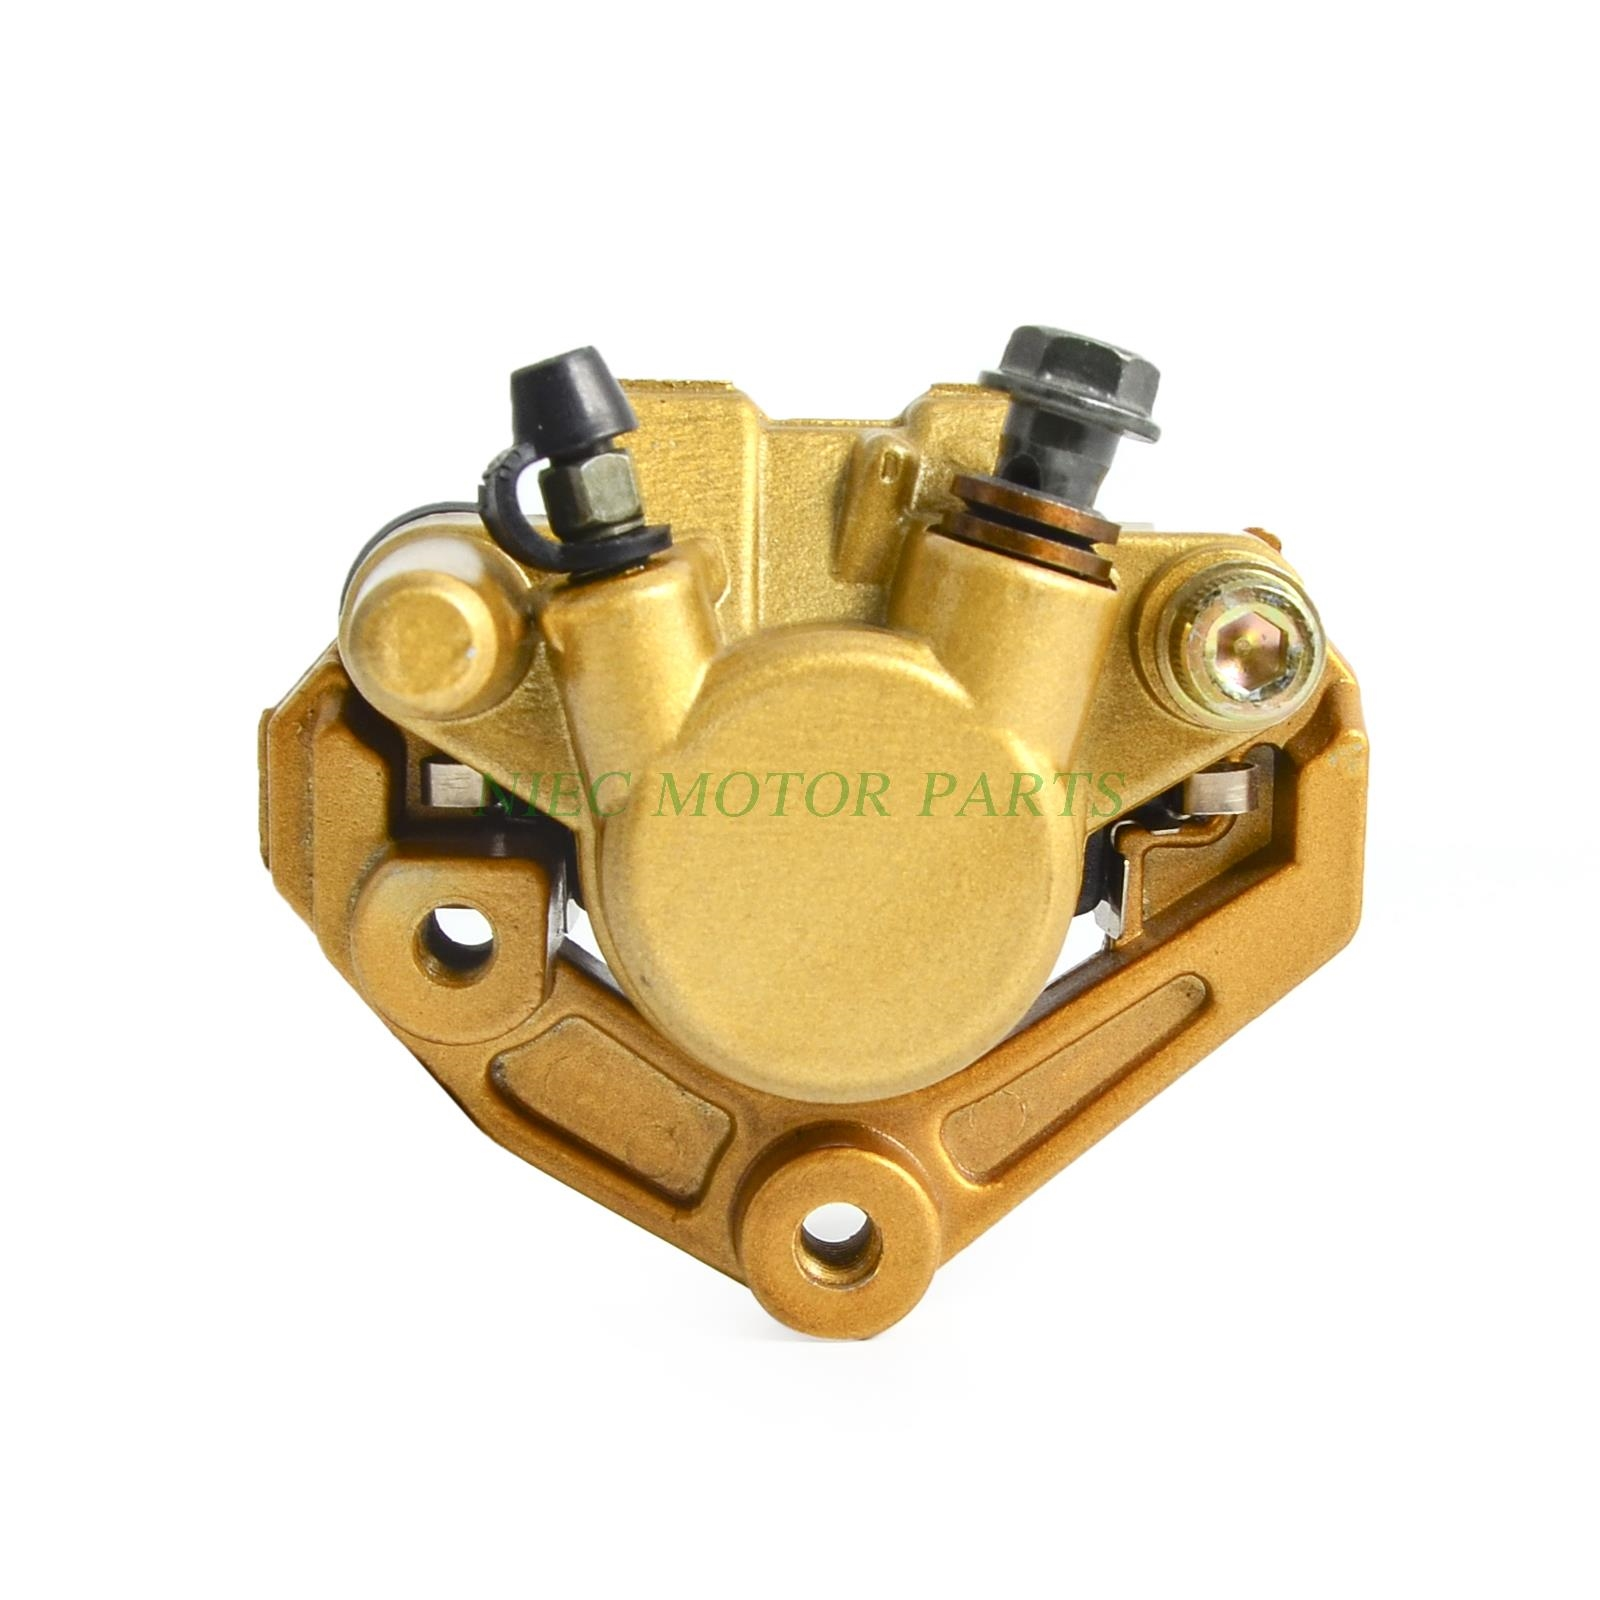 37.20$  Buy now - http://alingb.shopchina.info/go.php?t=32756170112 - Front Brake Caliper disk brake for Yamaha Zuma JOG BeeWee 50cc YW50 2T 50cc Moped -Scooter  #SHOPPING